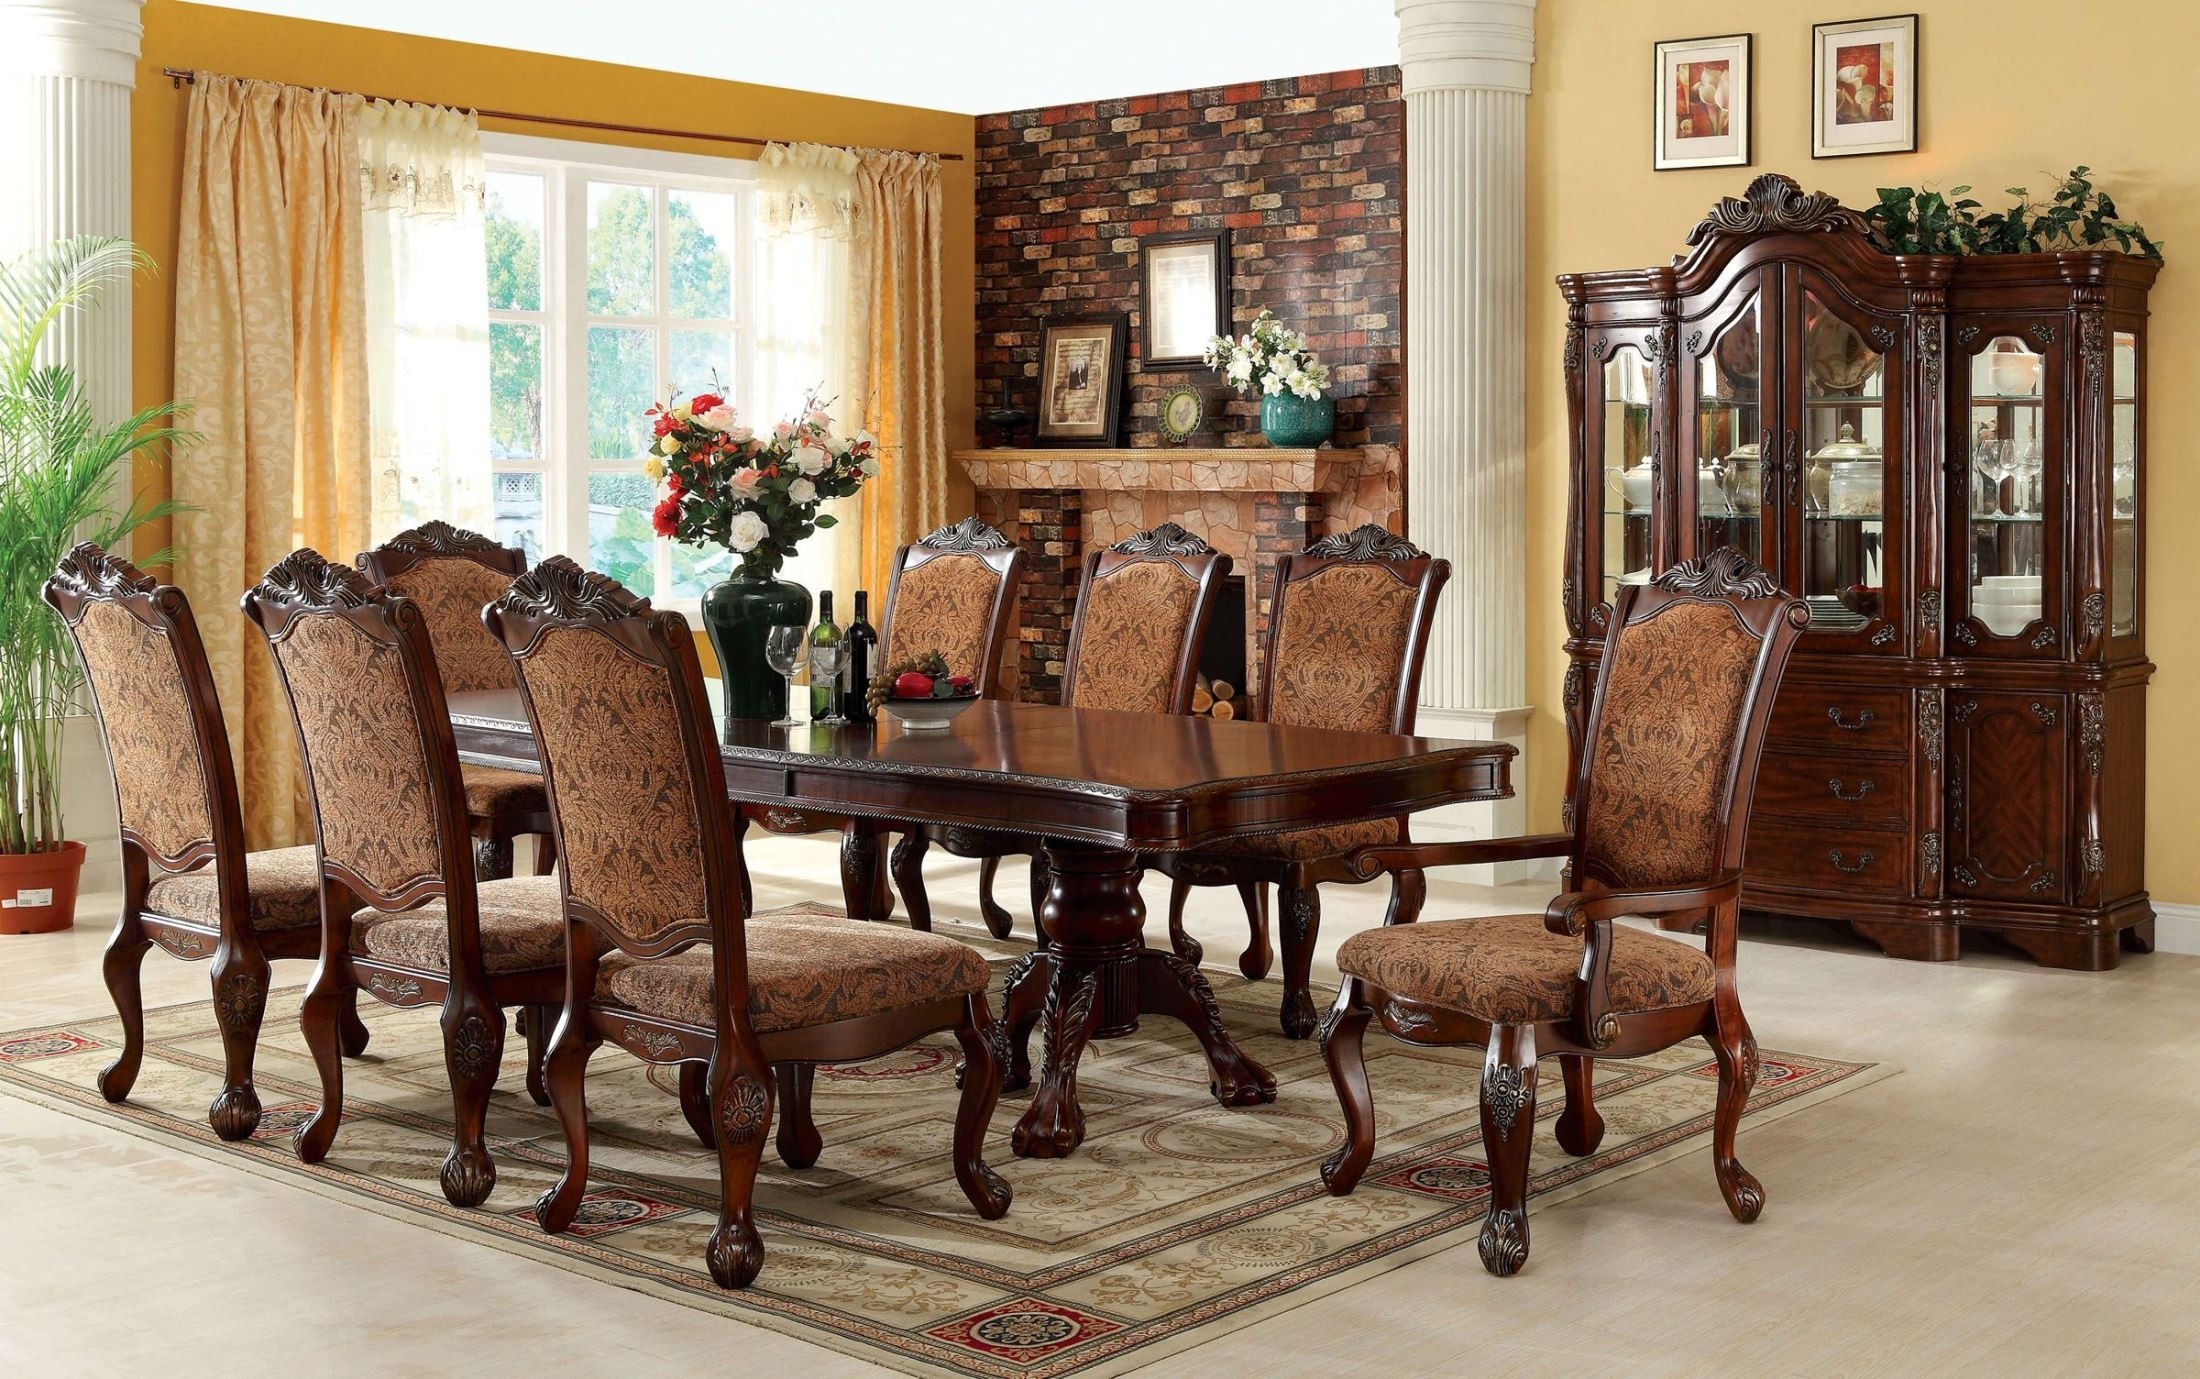 Cromwell antique cherry formal dining room set cm3103t for Formal dining table